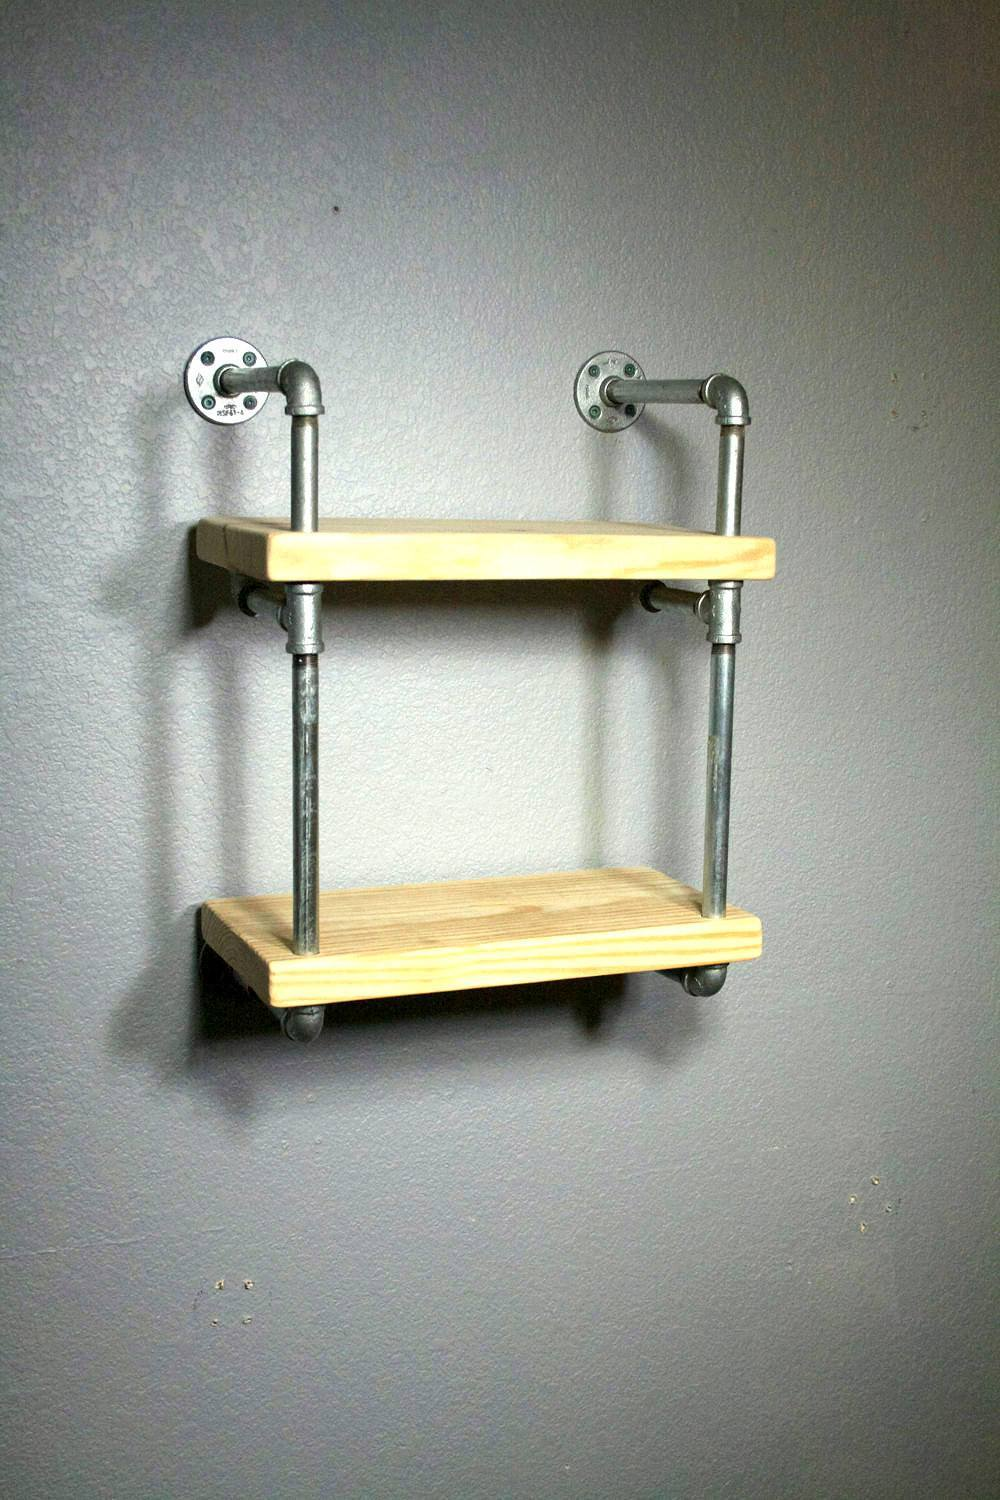 Wall shelves miniraw industrial wall mounted pipe shelf 1egv1483395581 amipublicfo Image collections